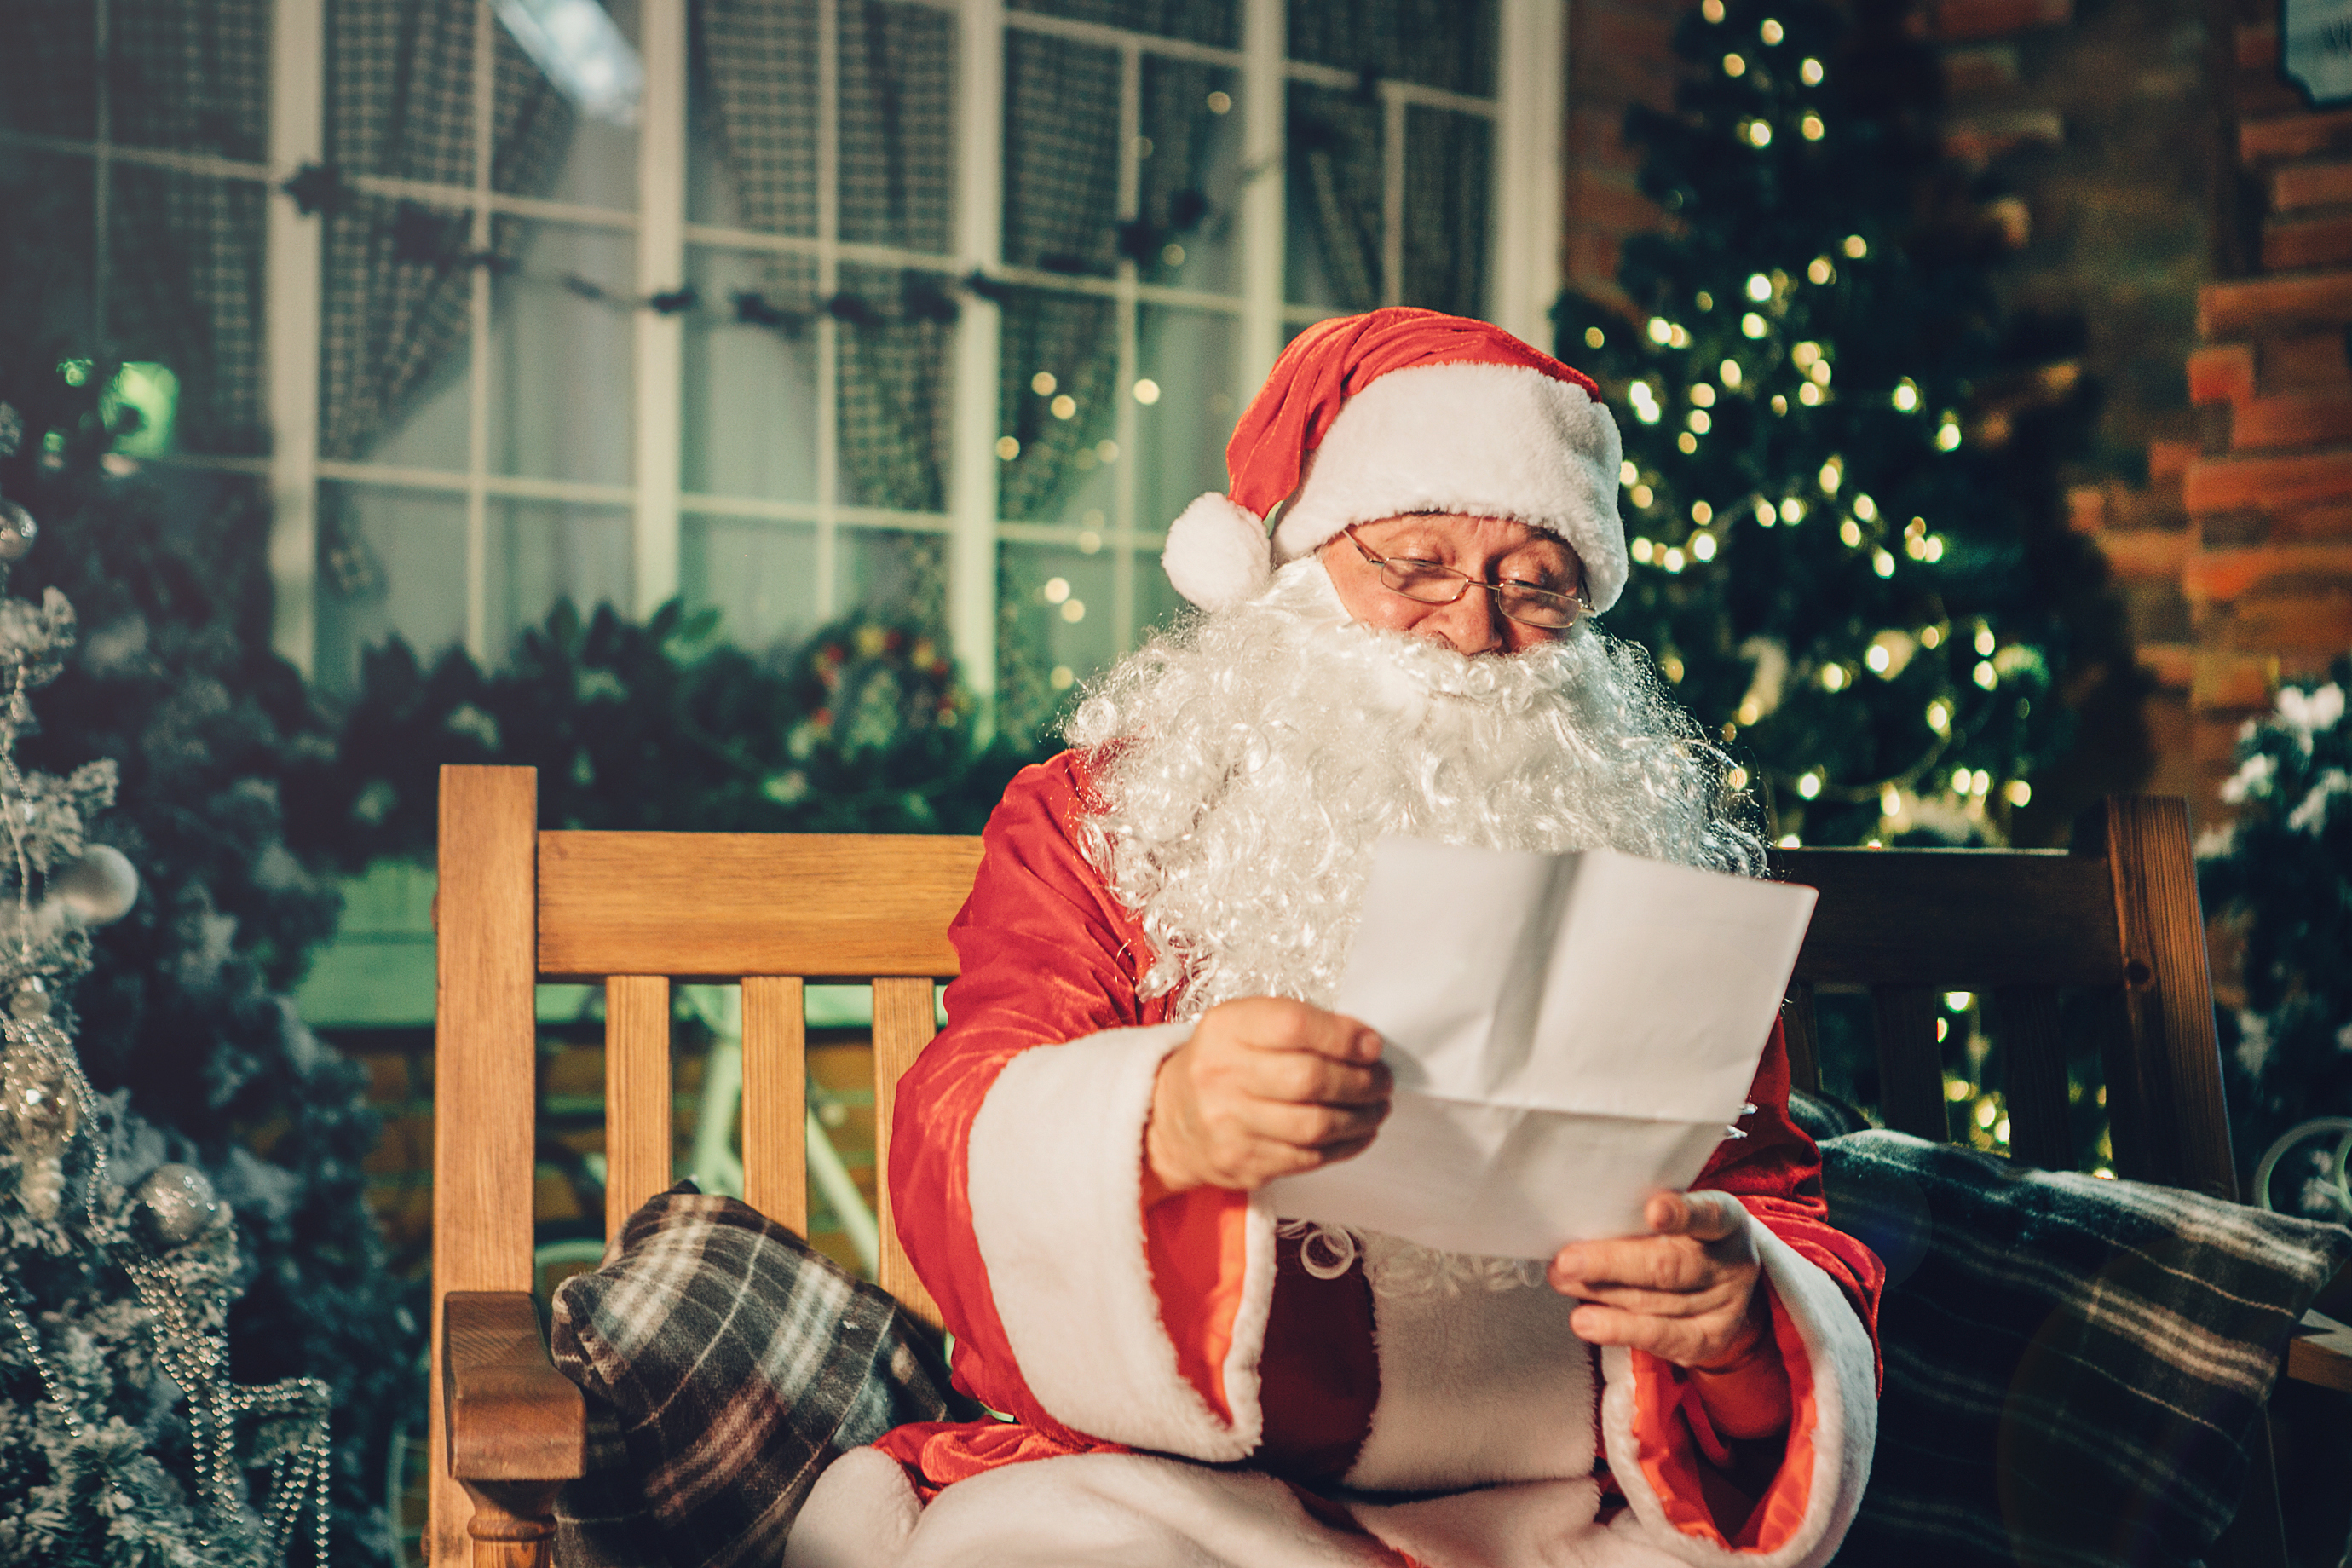 , Santa Claus is coming to town, Skem News - The Top Source for Skelmersdale News